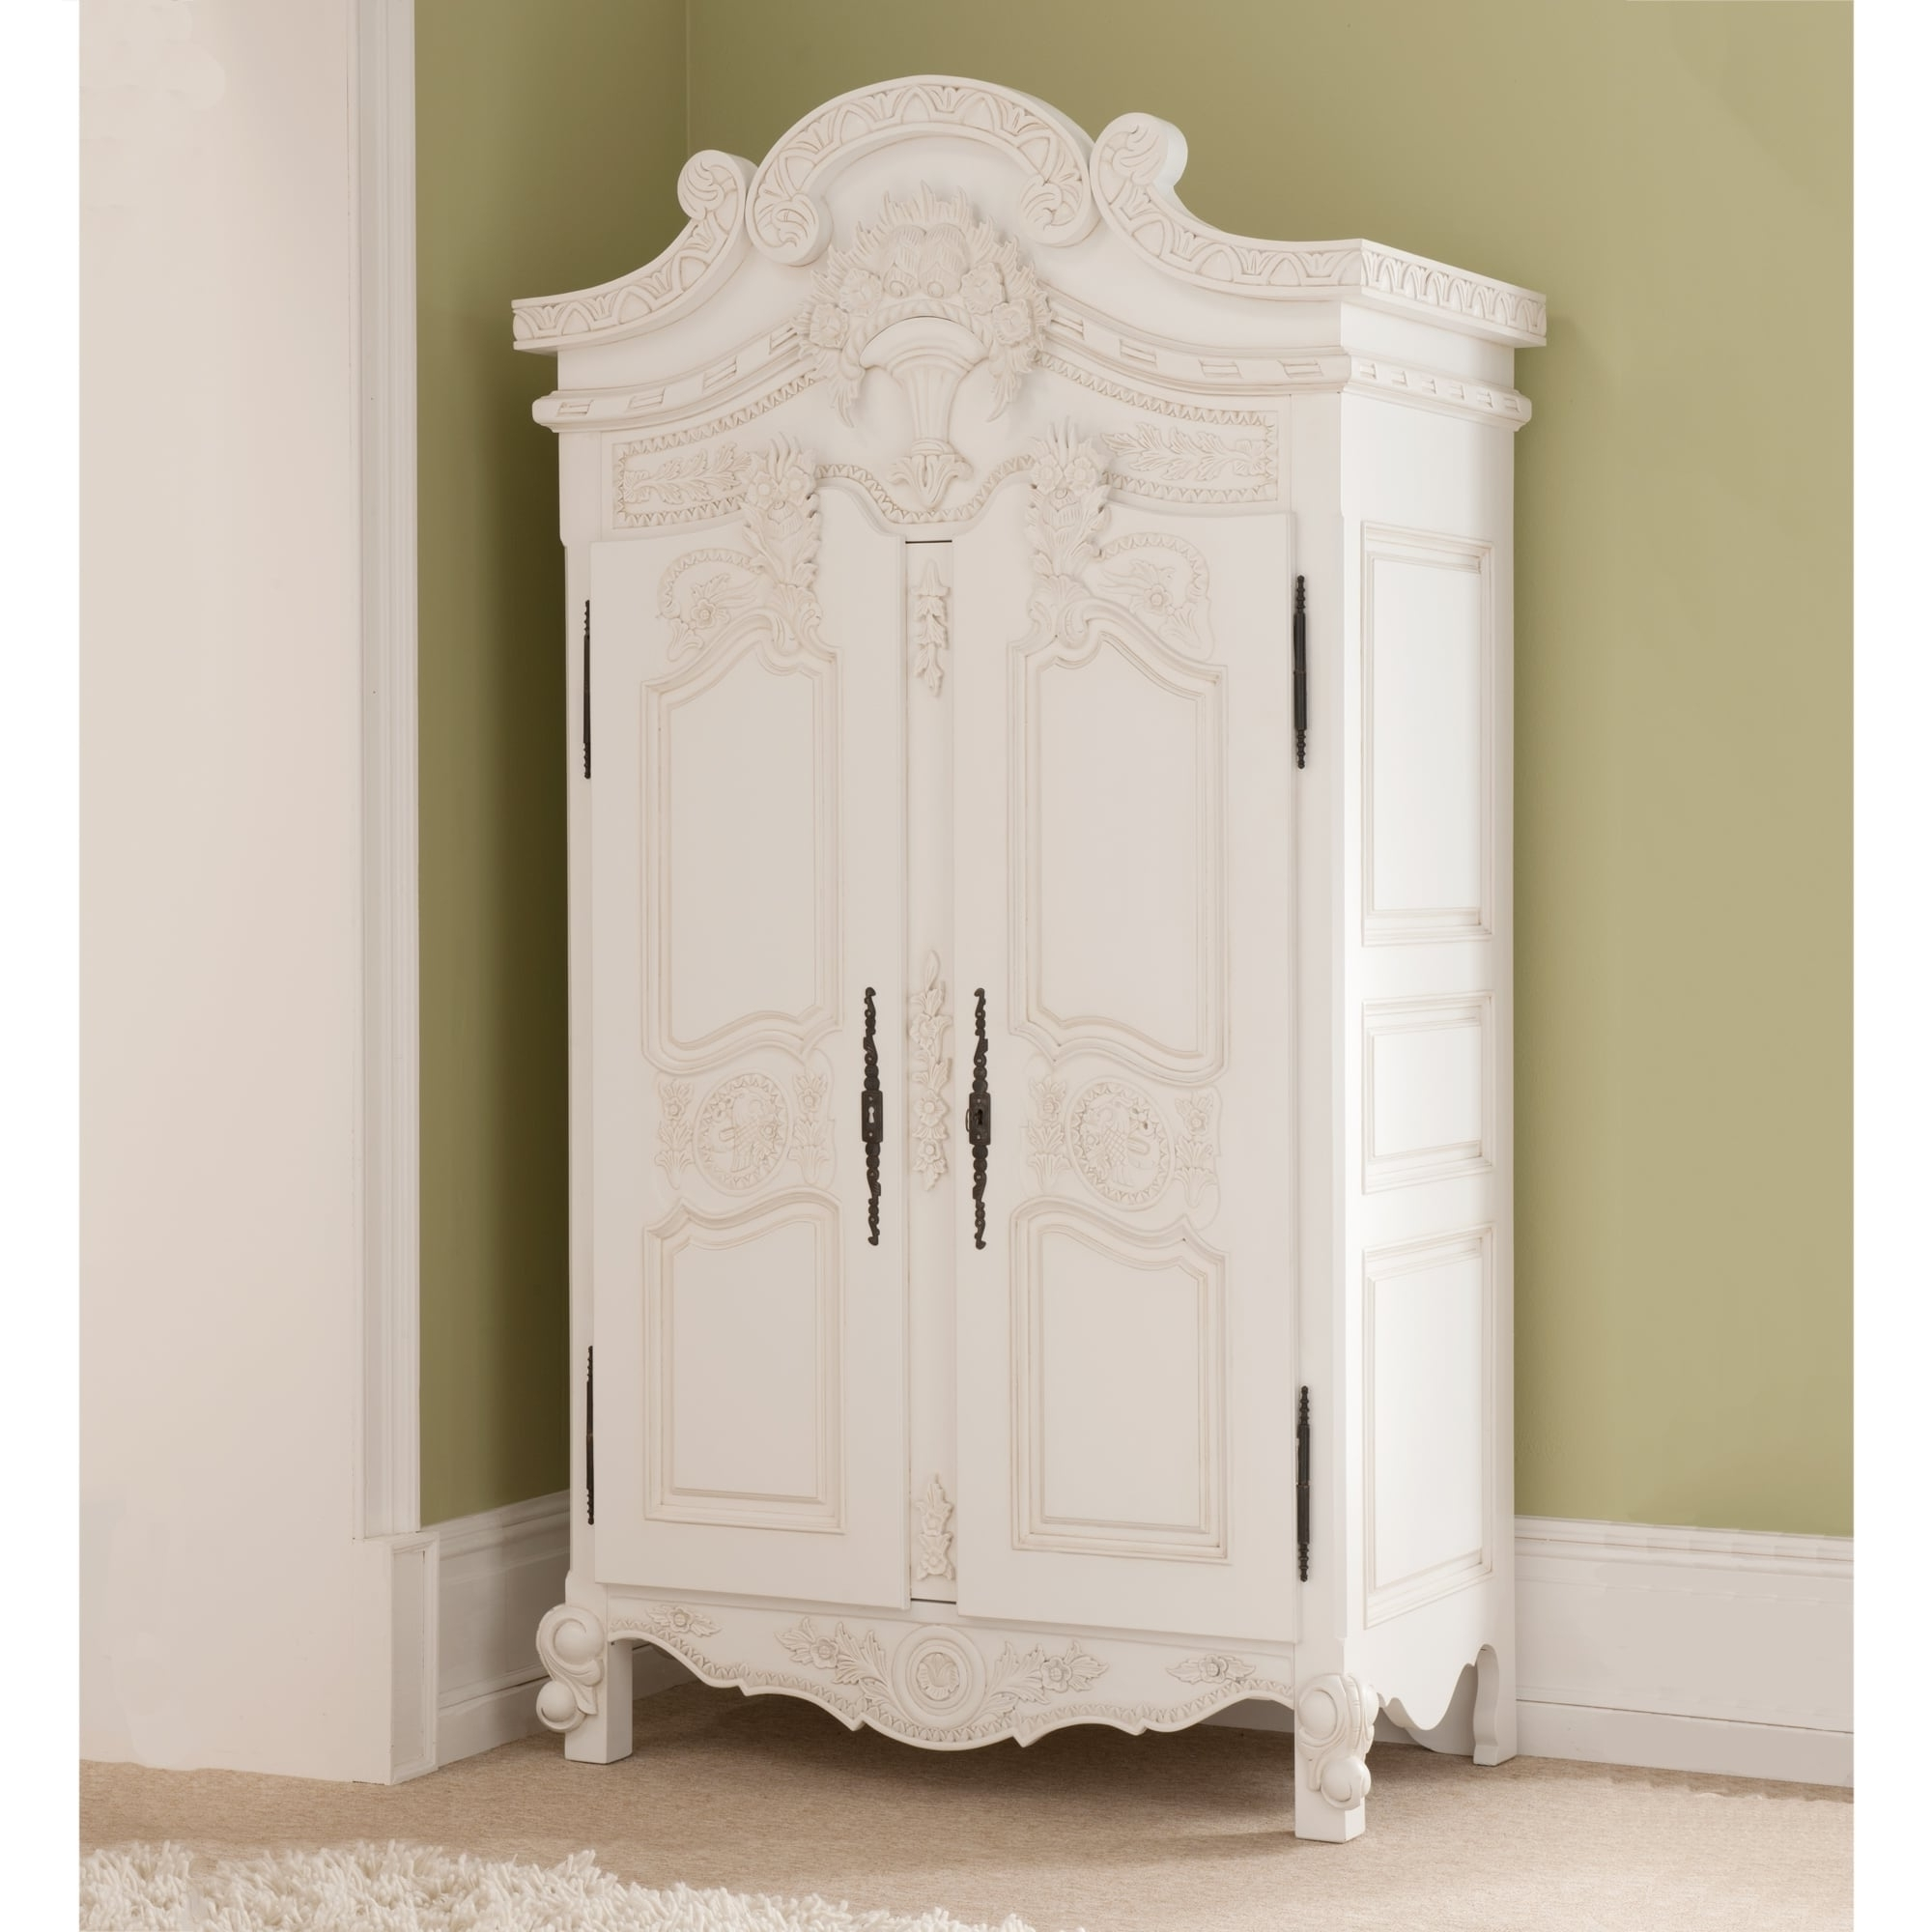 Rococo Antique French Wardrobe A Stunning Addition To Our Shabby Intended For Best And Newest White French Wardrobes (View 11 of 15)